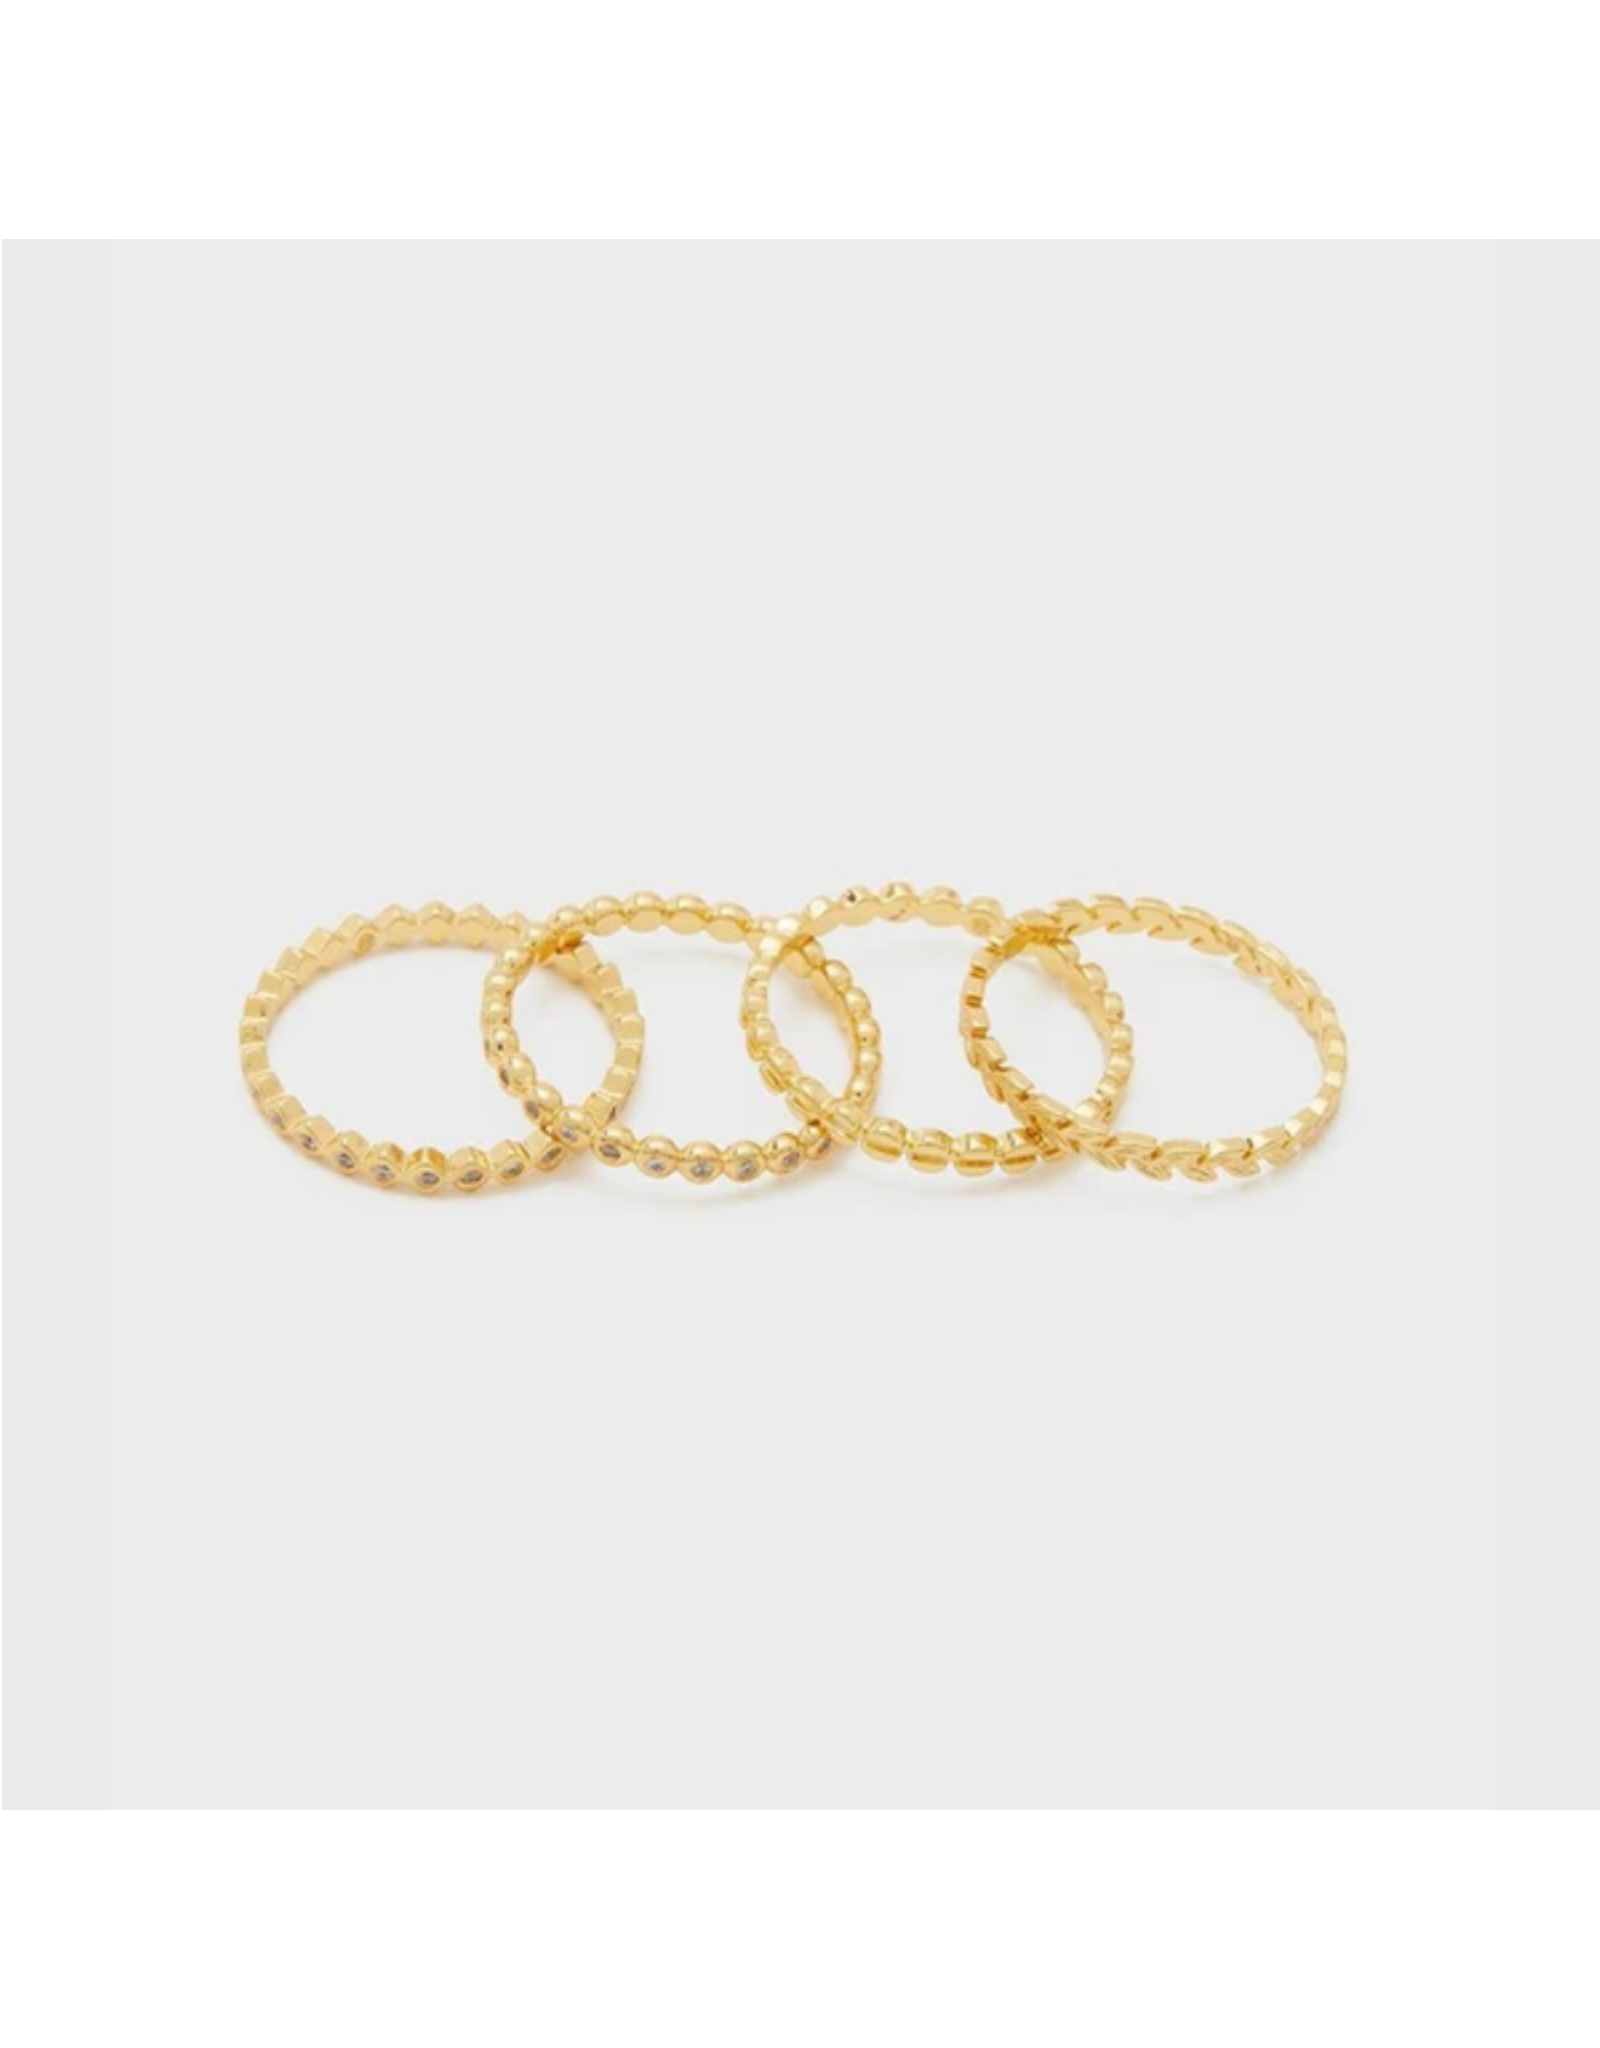 Website Mini Stackable Rings - gold/7